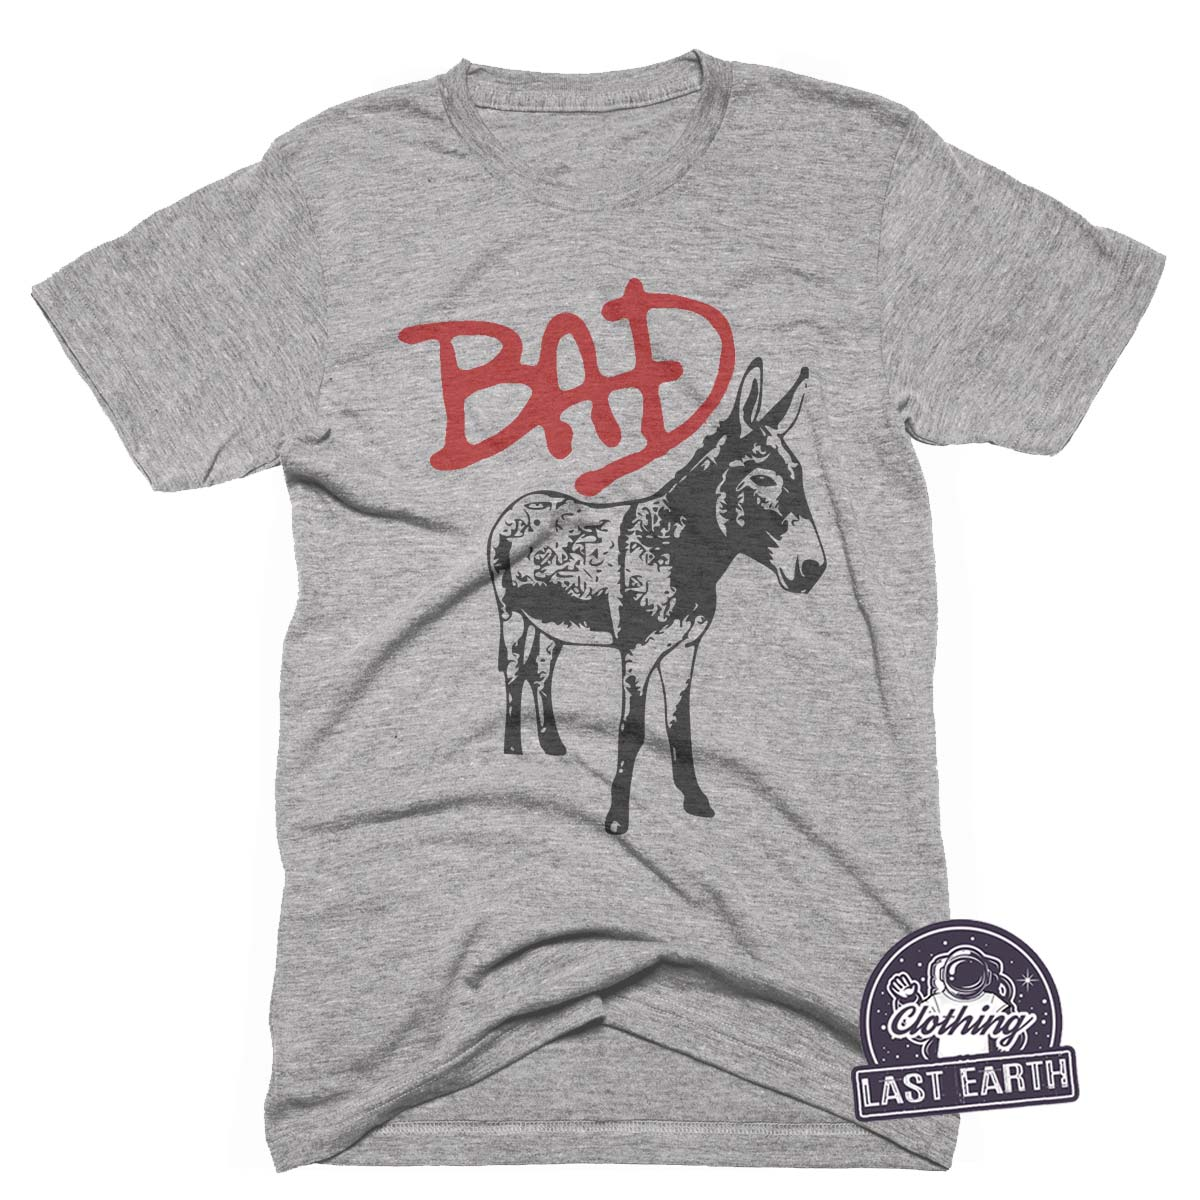 a11ad89f3 Bad Ass T-Shirt | Funny Donkey Shirt | Last Earth - Last Earth Clothing